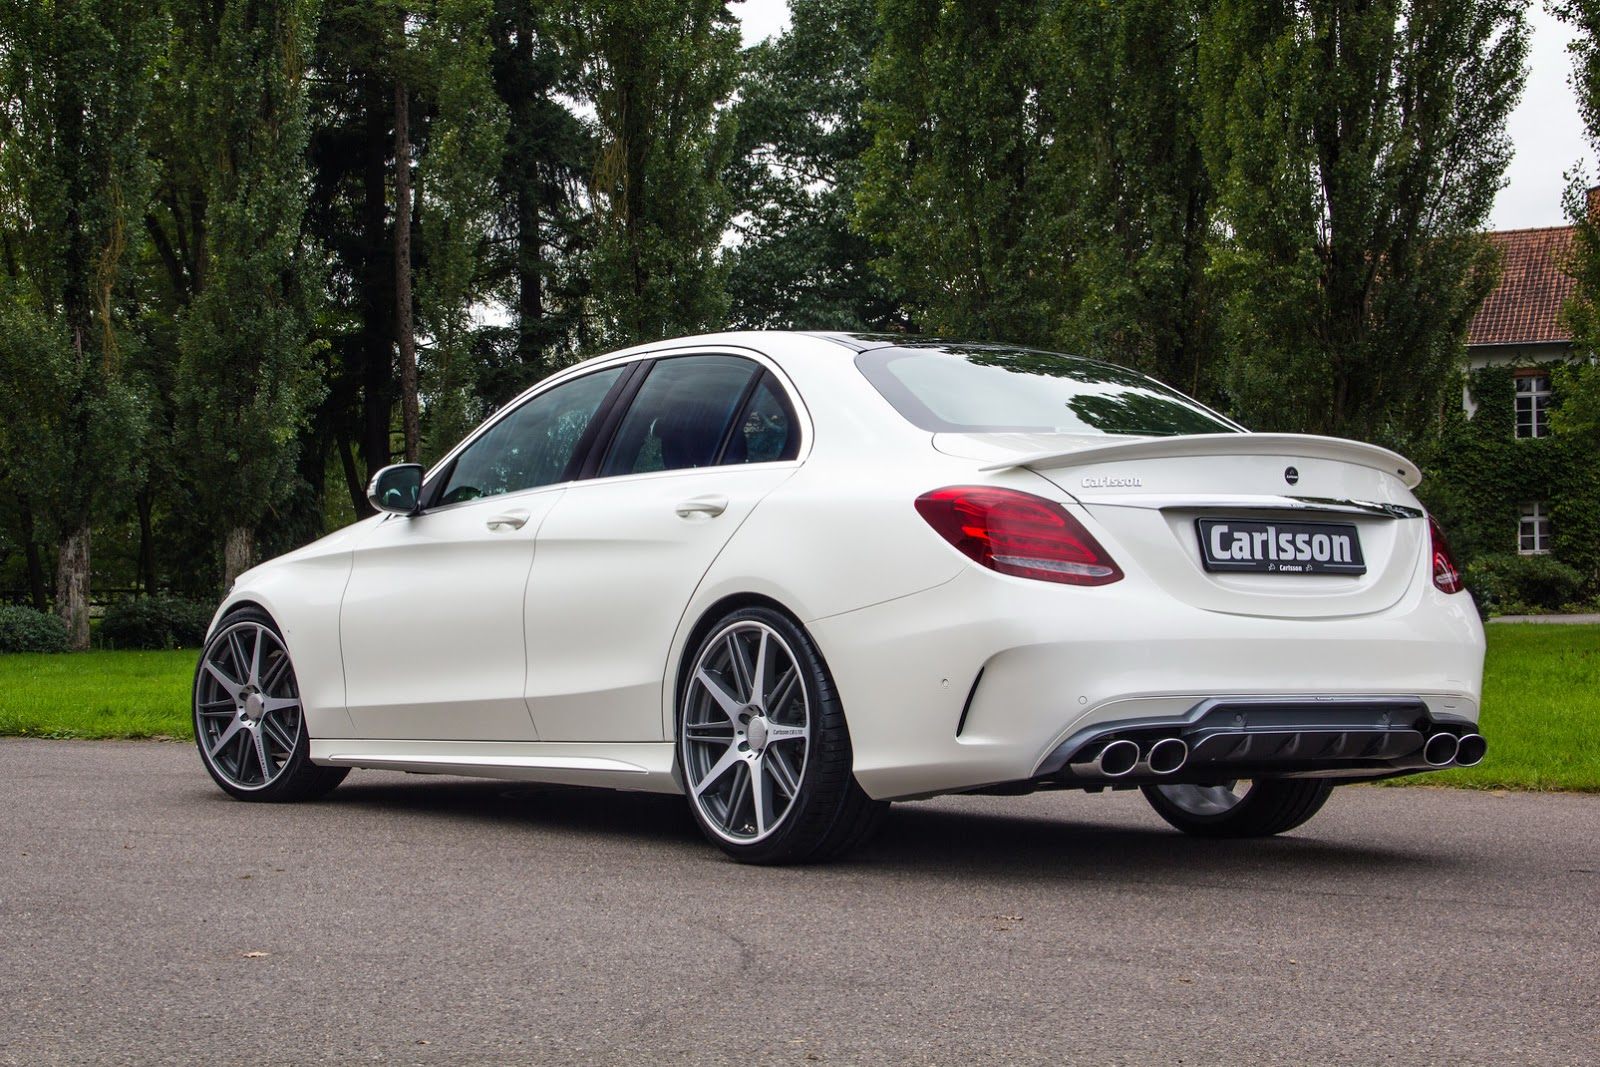 Carlsson S Take On New Mercedes Benz C Class Amg Sport